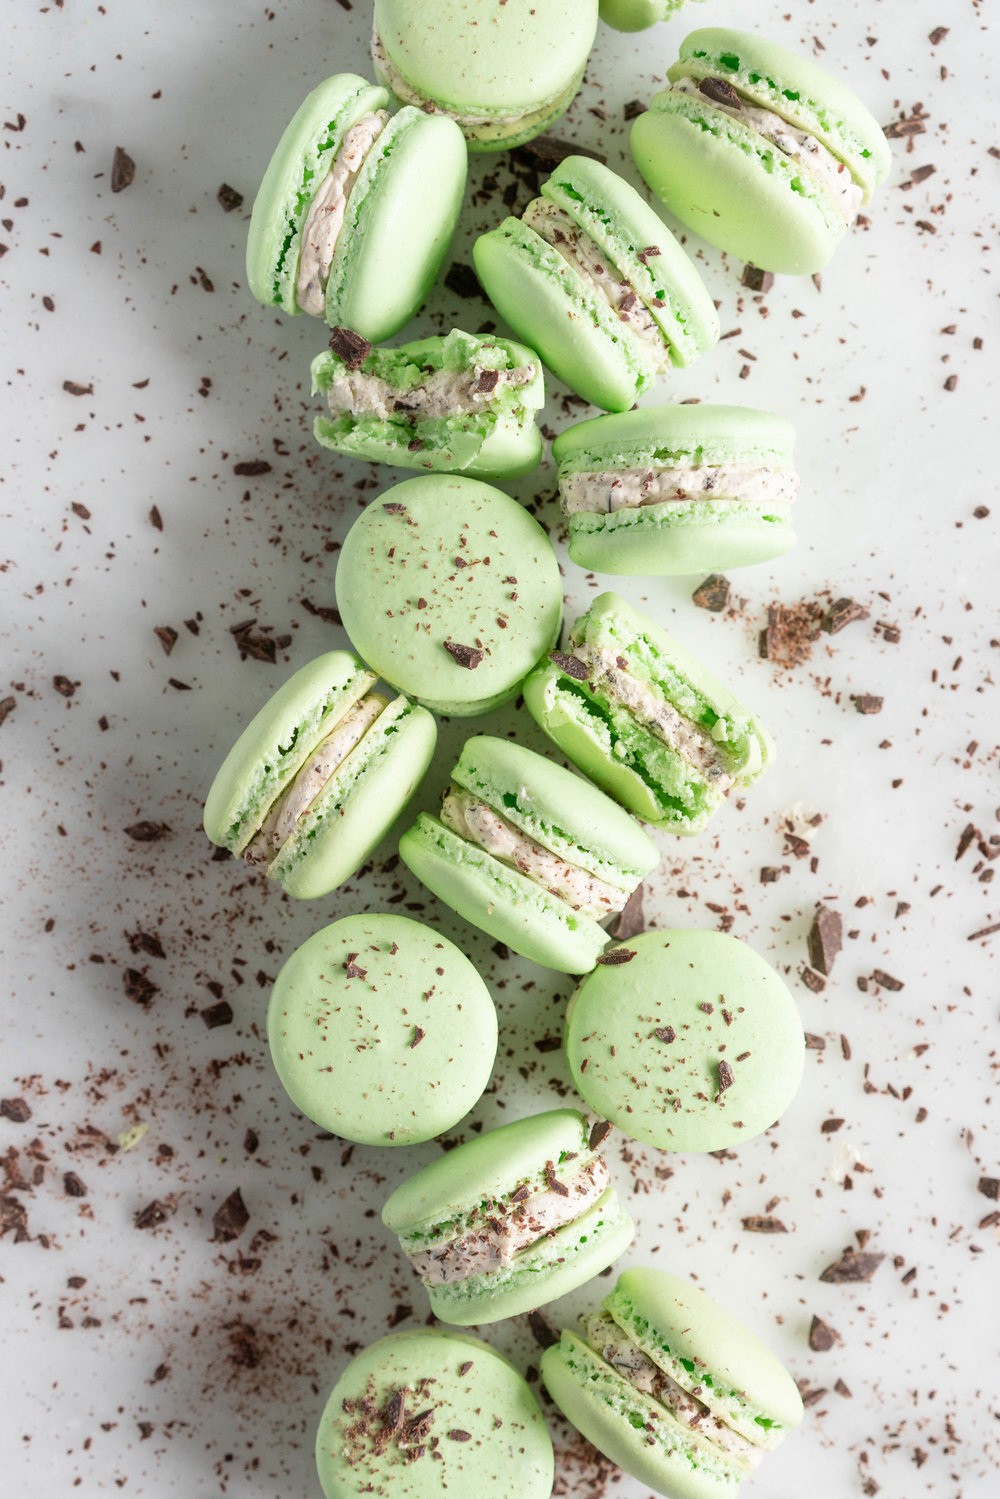 Mint Chocolate Chip Macarons with German buttercream. Delicate French macaron shells are sandwiched together by a mint chocolate chip german buttercream that tastes just like ice cream! #mintchocolatechip #mintchip #frenchmacarons #macarons #recipe #howtomake